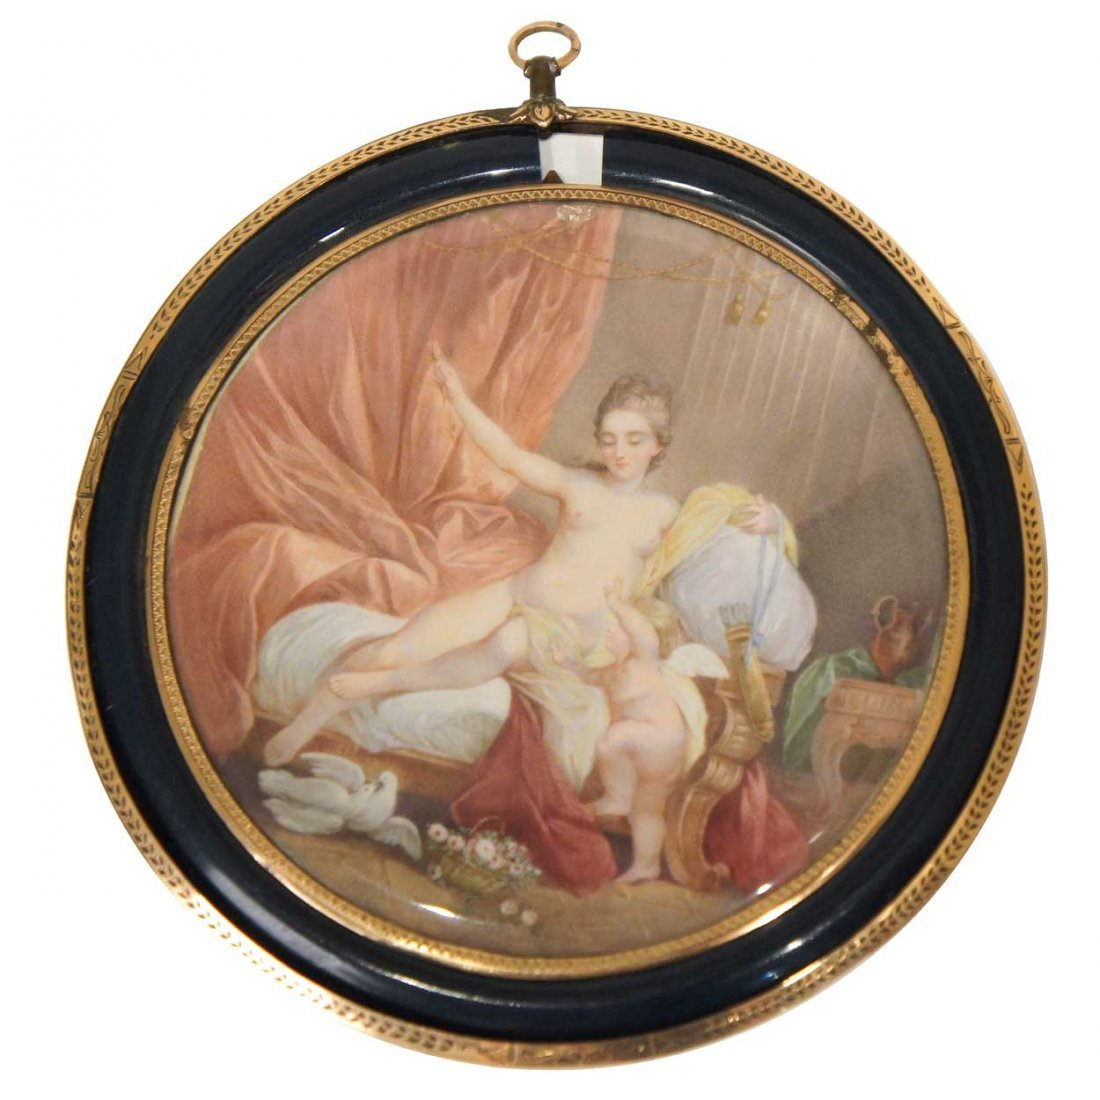 572: A French Louis XVI Style Miniature Cabinet Paintin